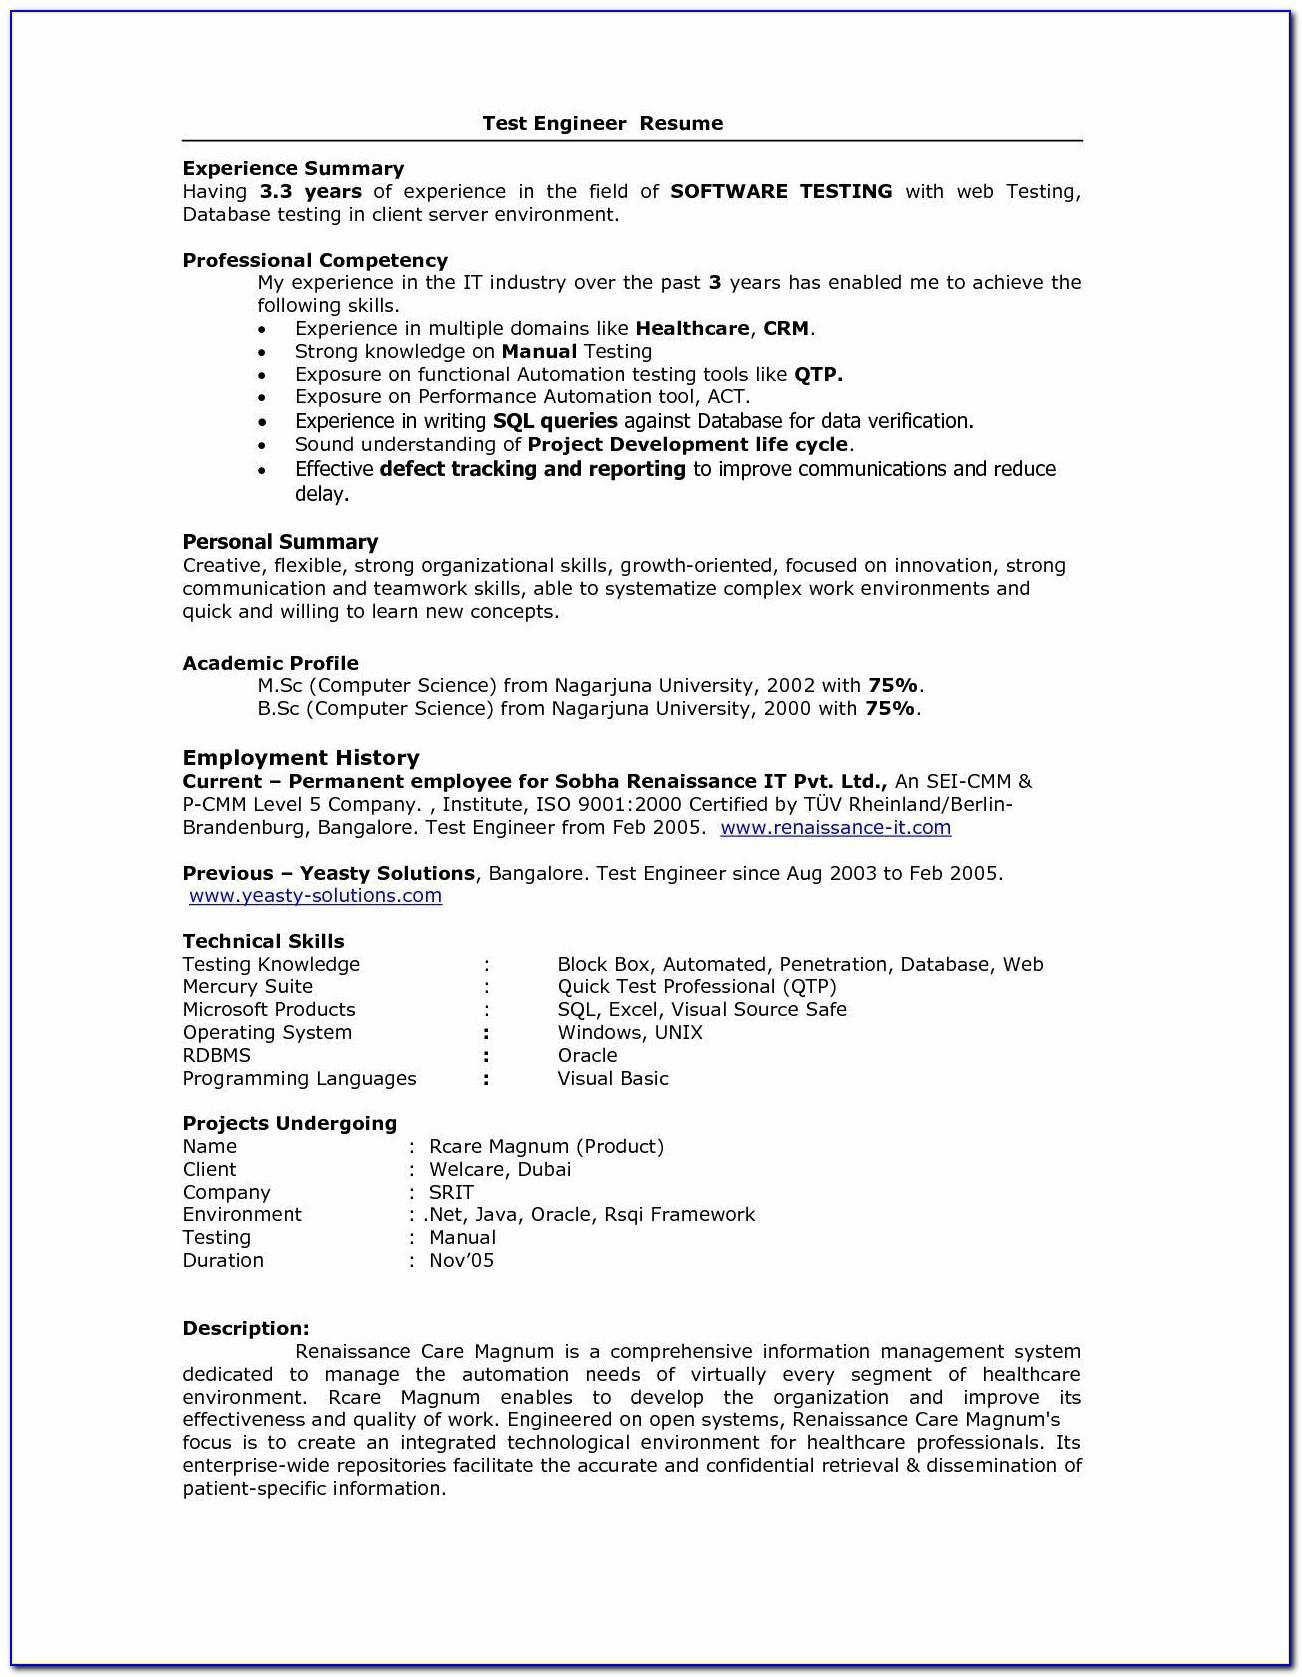 Resume Templates For Software Professionals